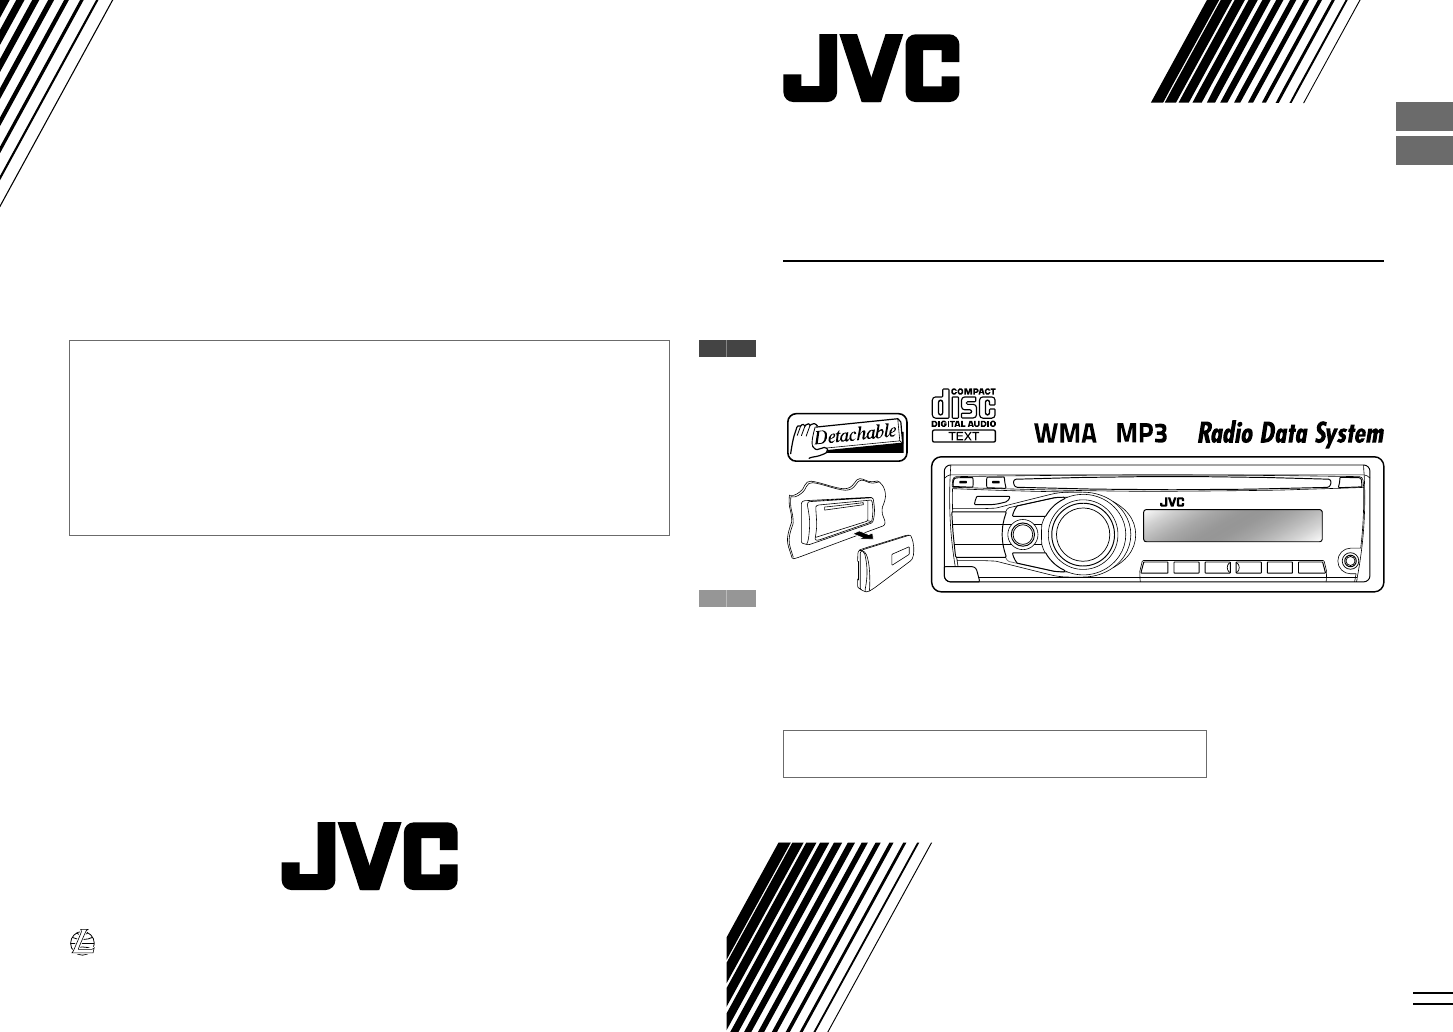 jvc kd r330 wiring diagram diagram stream. Black Bedroom Furniture Sets. Home Design Ideas